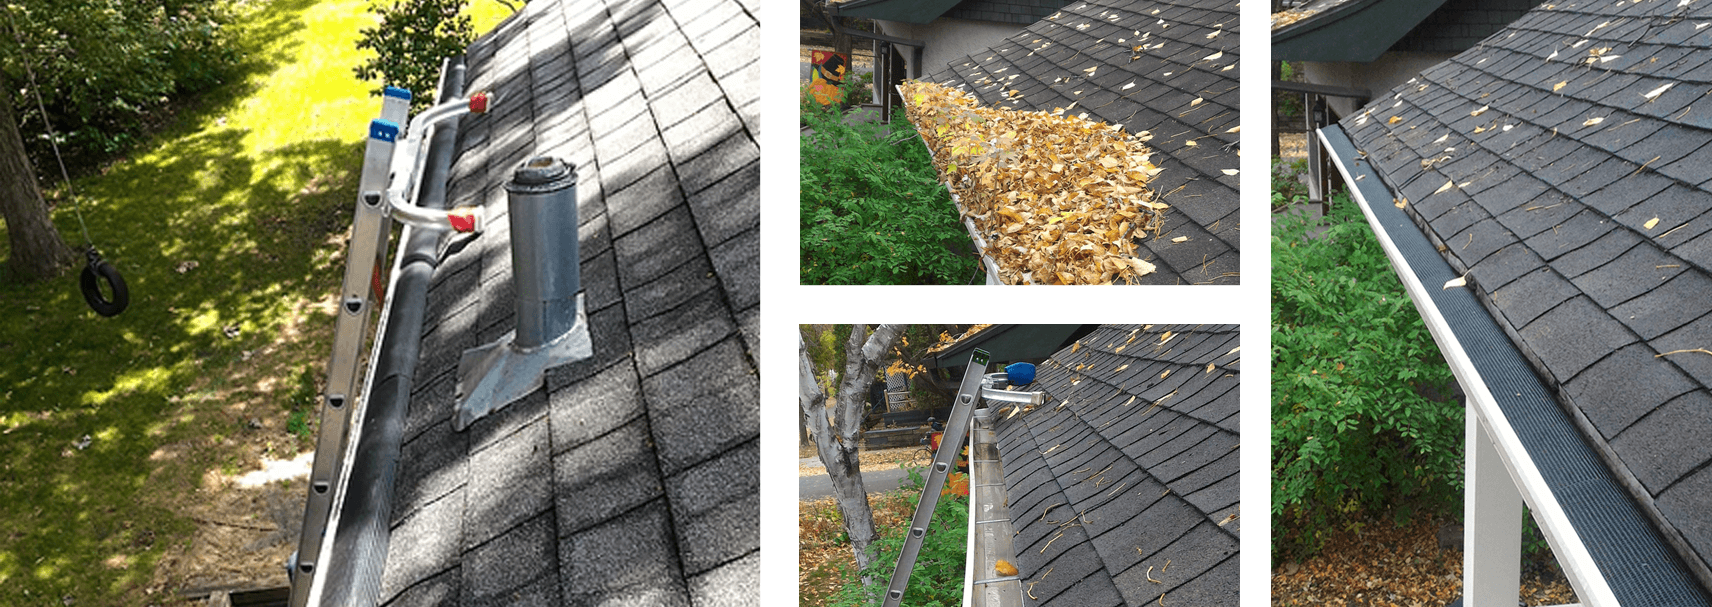 Gutter Guard Installation Minneapolis, St. Paul MN